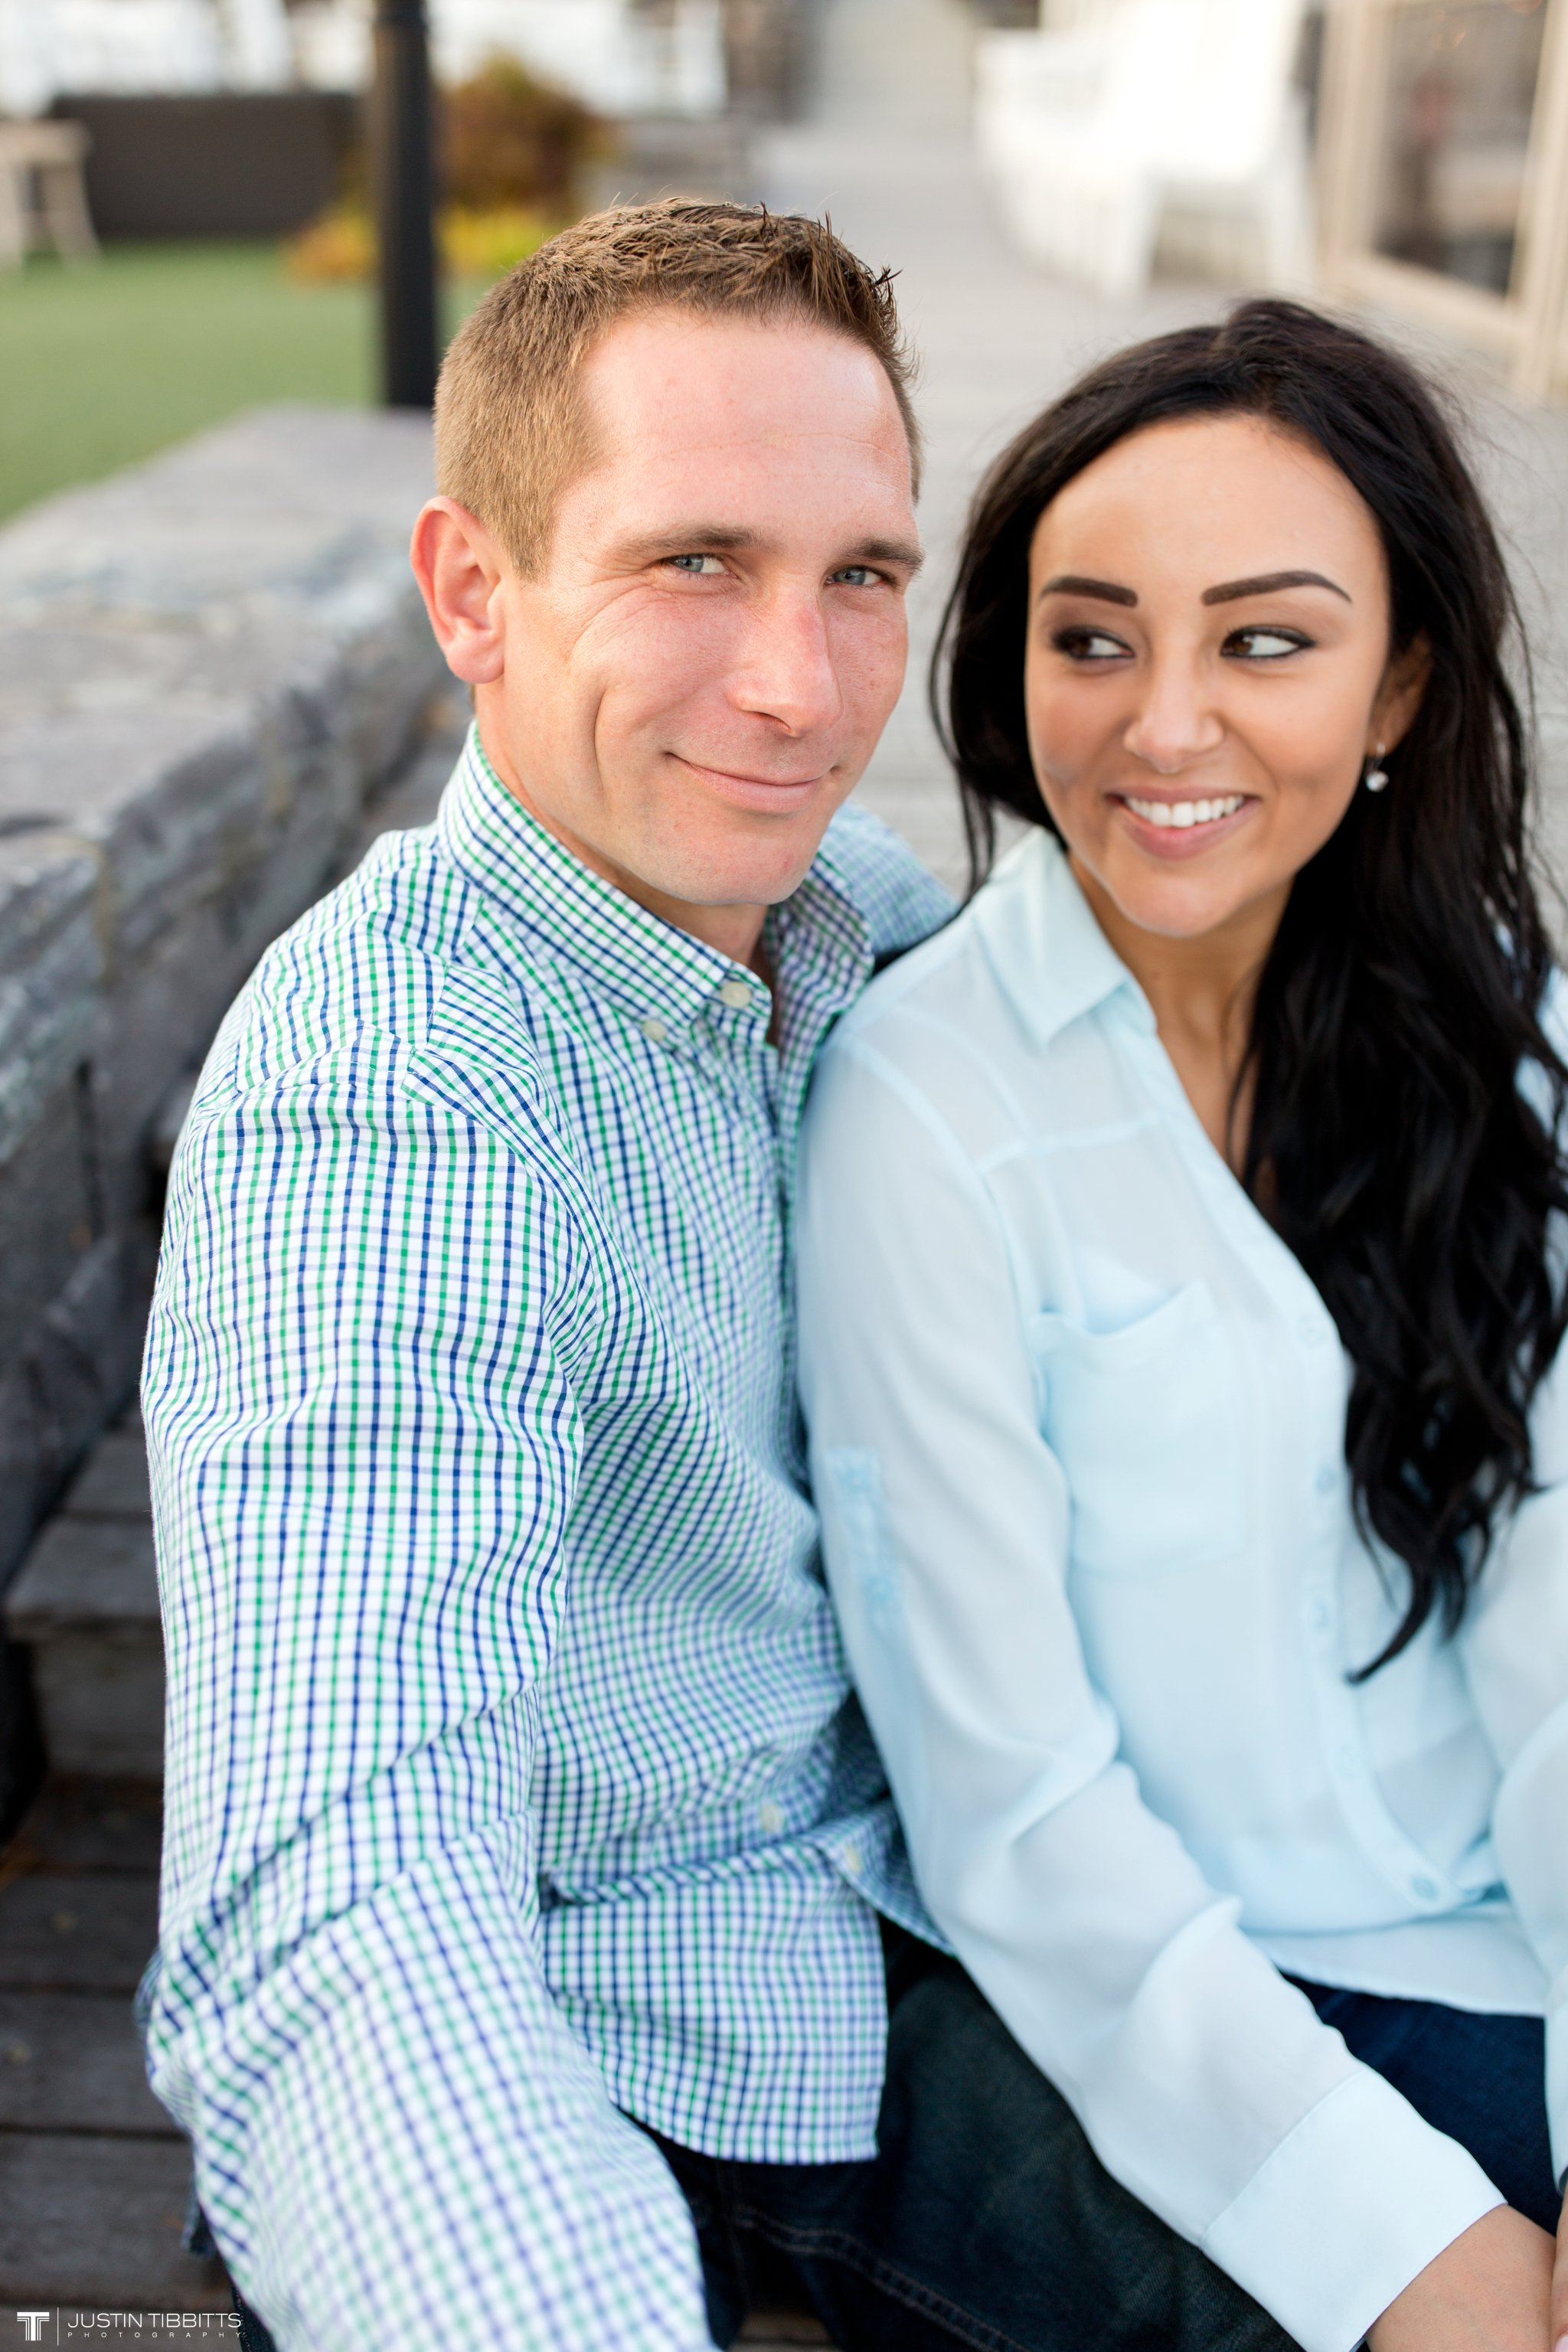 sagamore-engagement-photos-by-justin-tibbitts-photography-with-laina-and-mike_0036